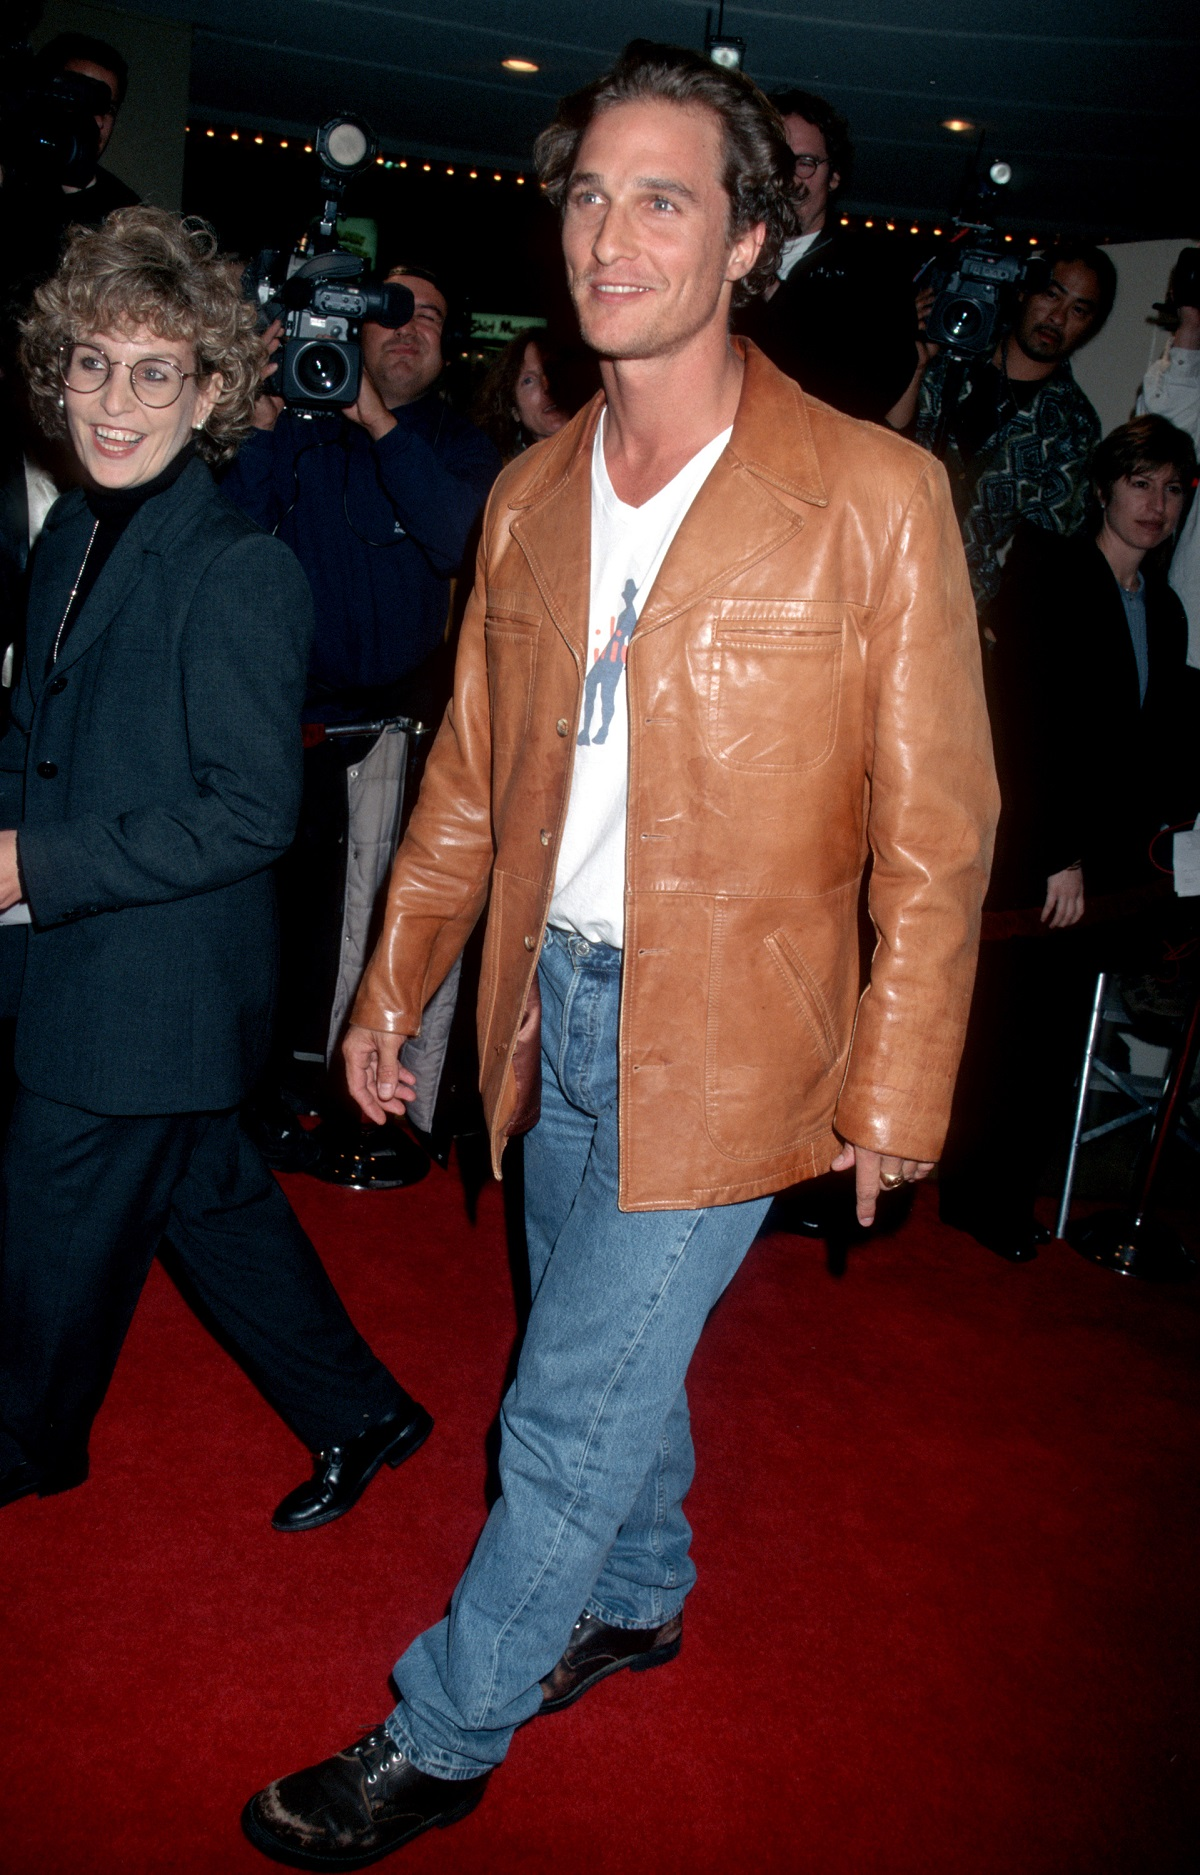 Matthew McConaughey on the red carpet for 'Good Will Hunting'